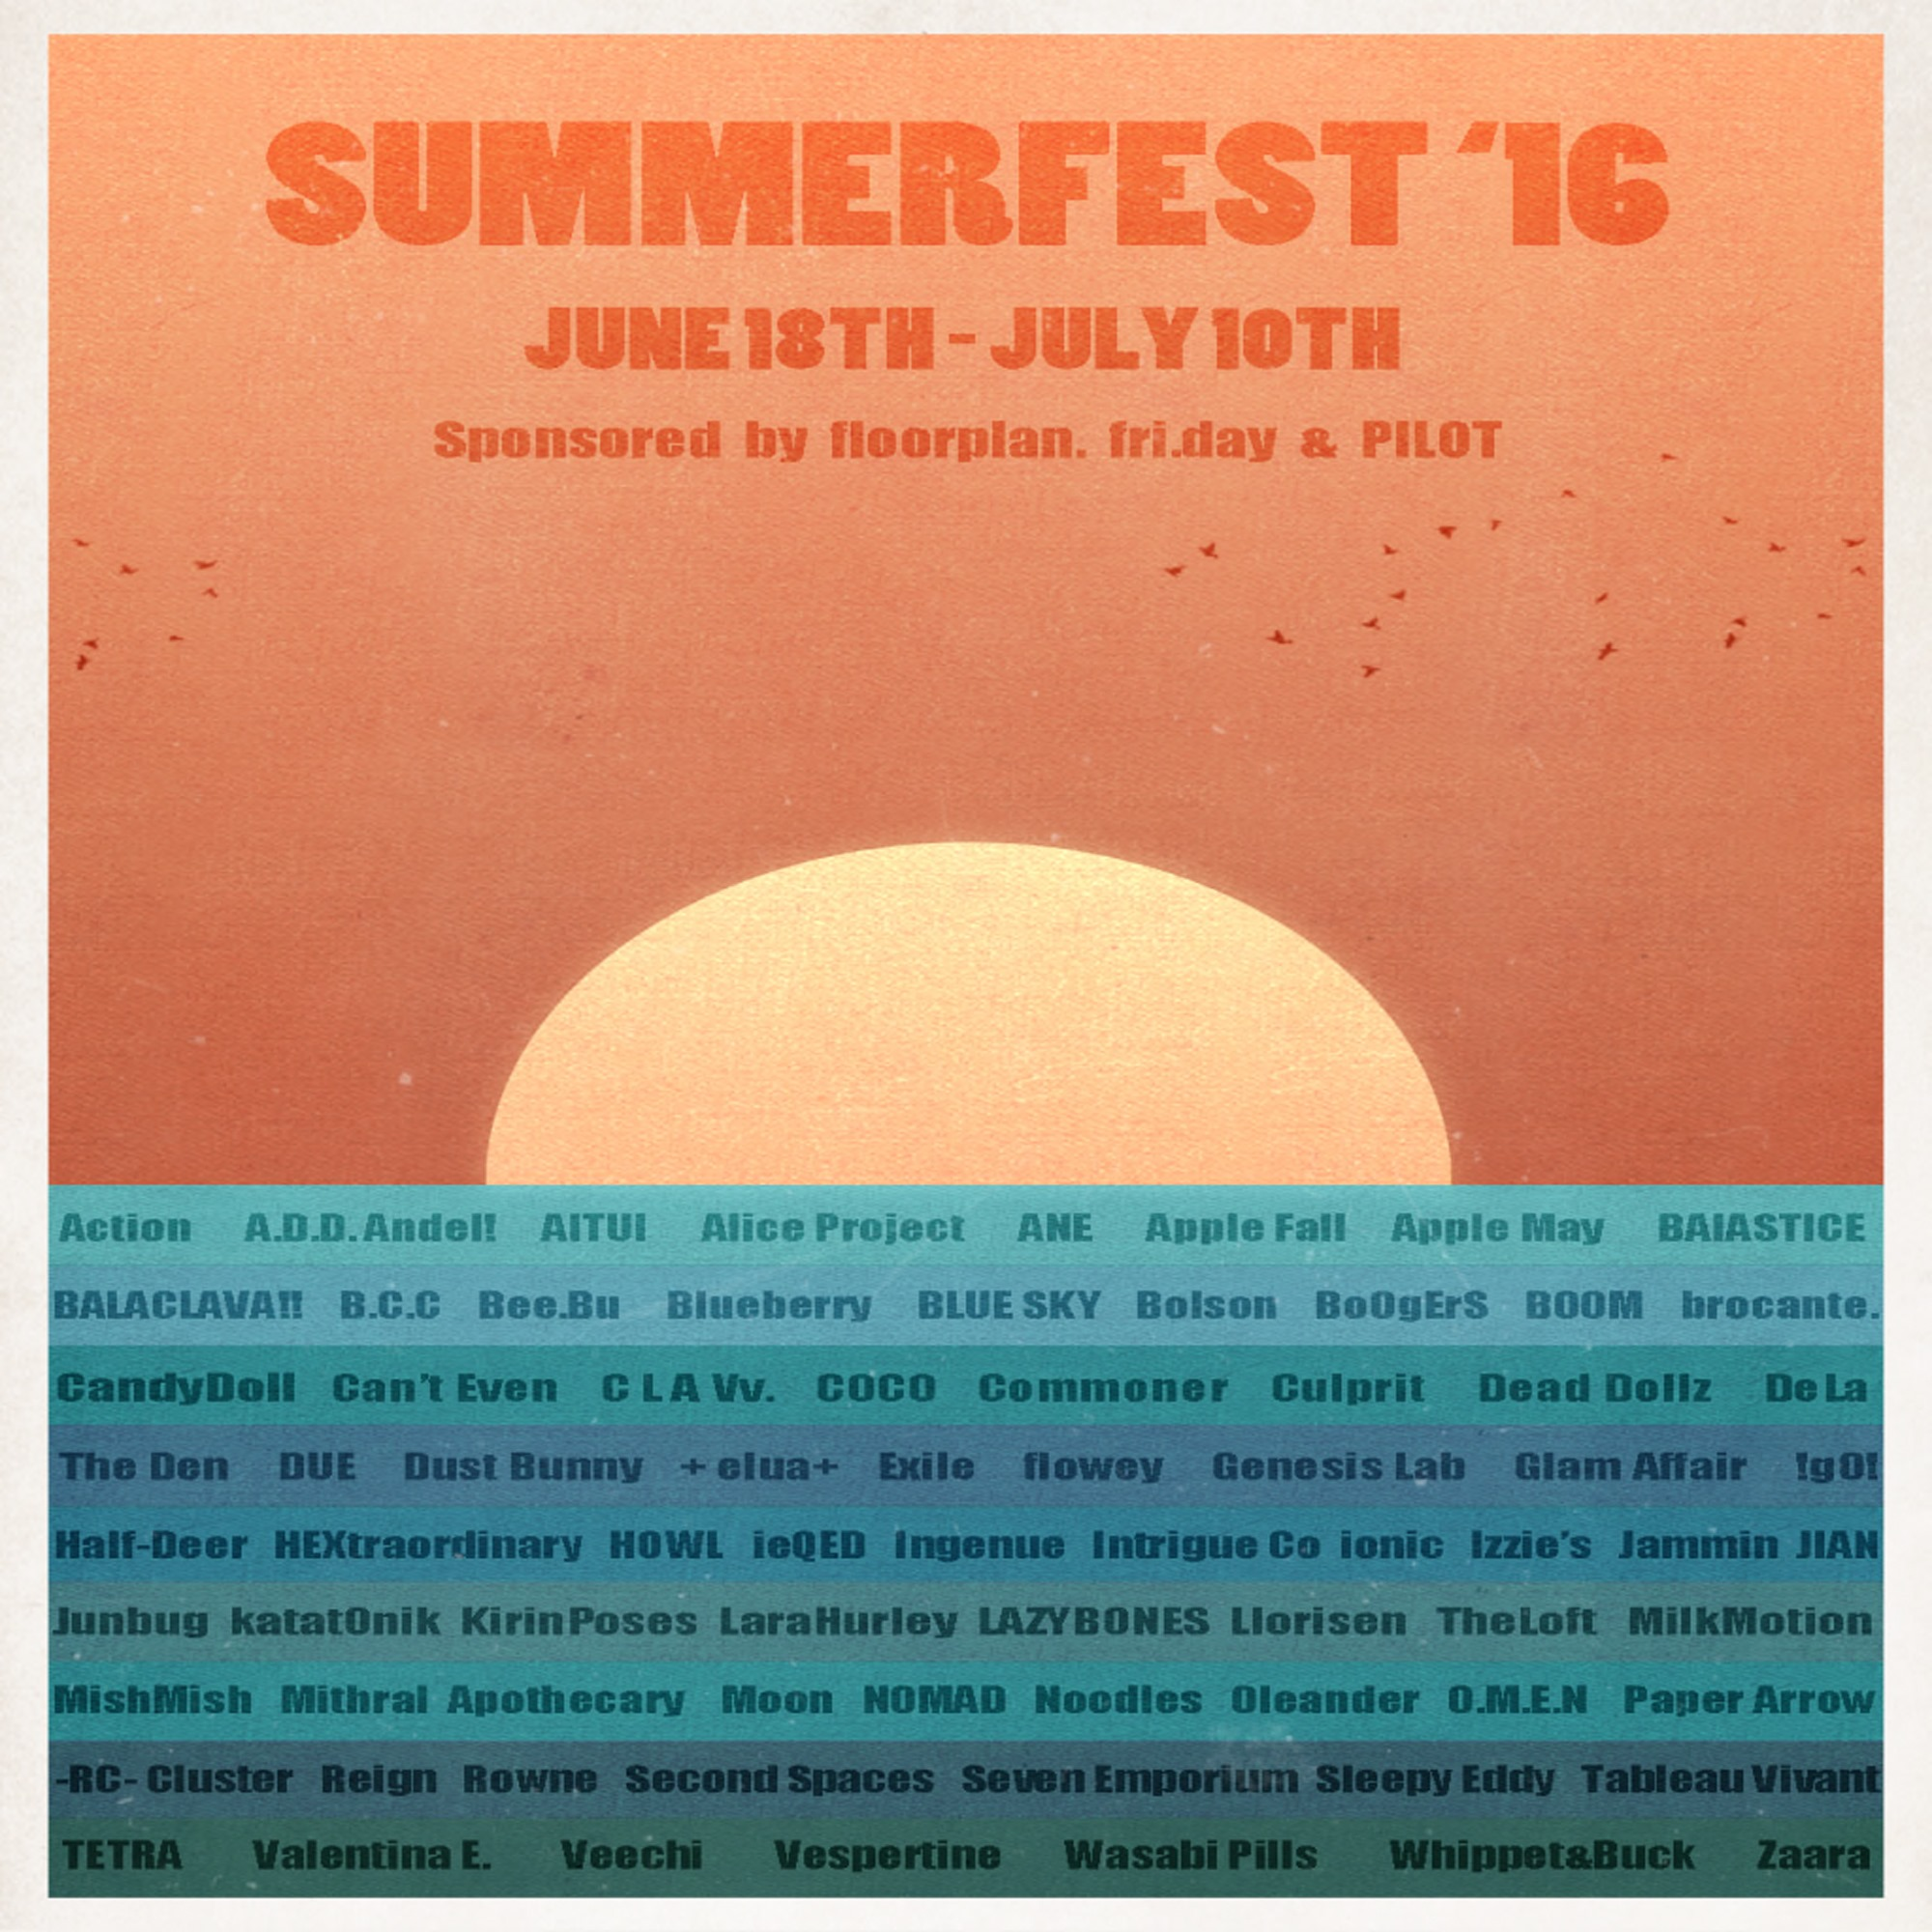 Summerfest '16 Poster - Official Line-up